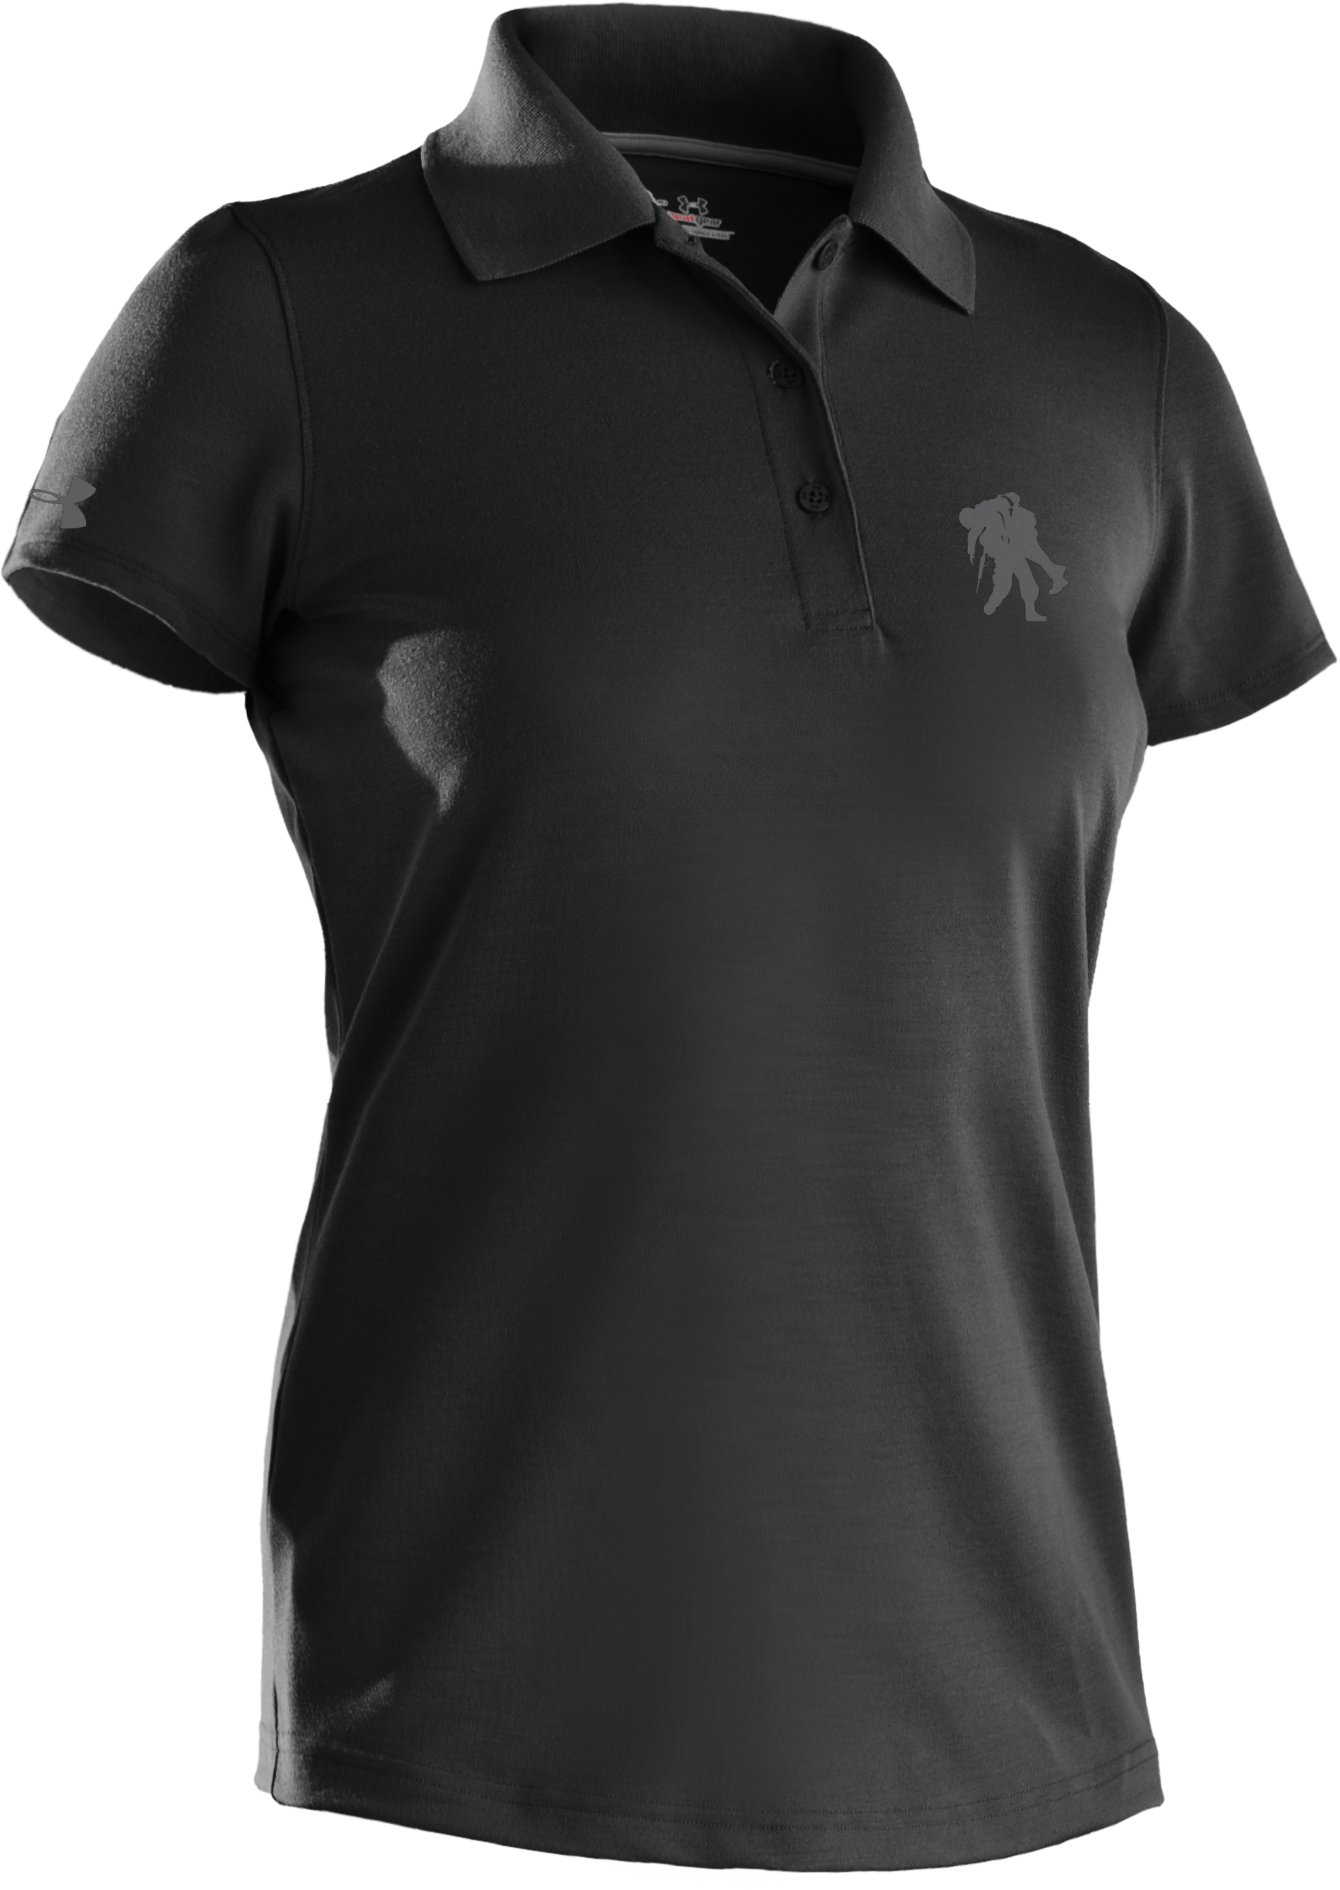 Women's WWP Polo Shirt, Black , undefined